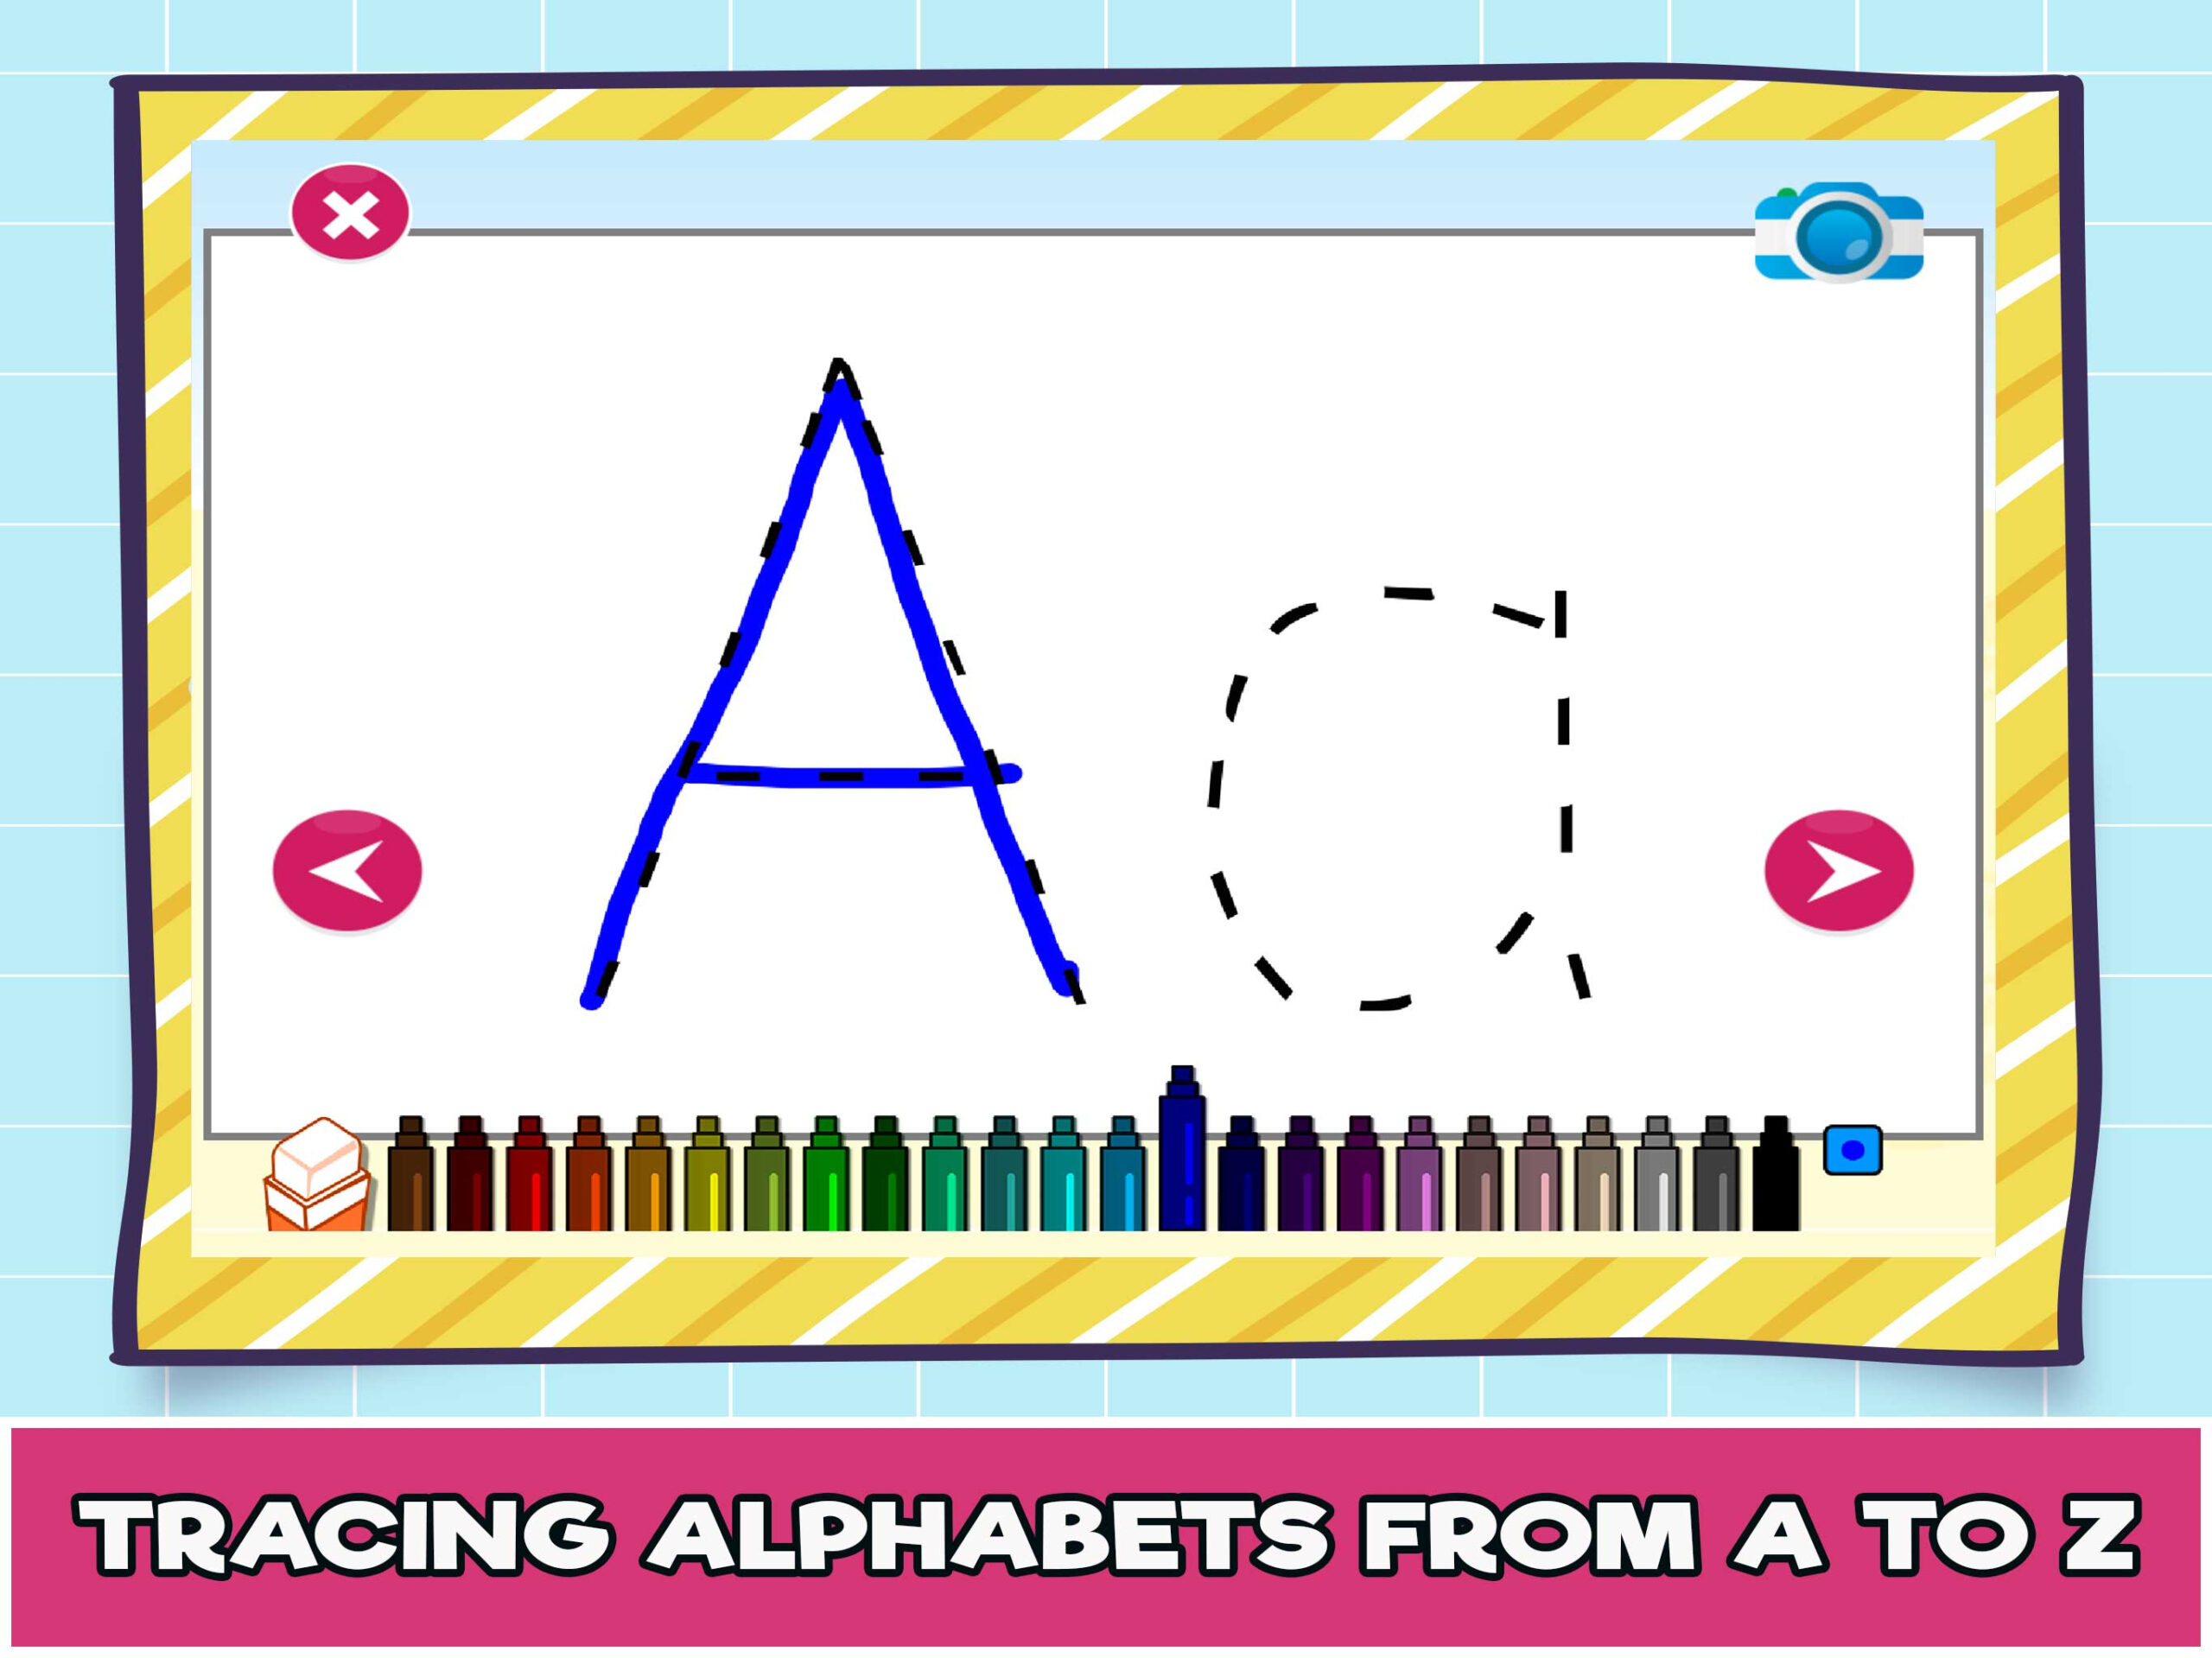 Free Online Alphabet Tracing Game For Kids - The Learning Apps pertaining to Letter Tracing Online